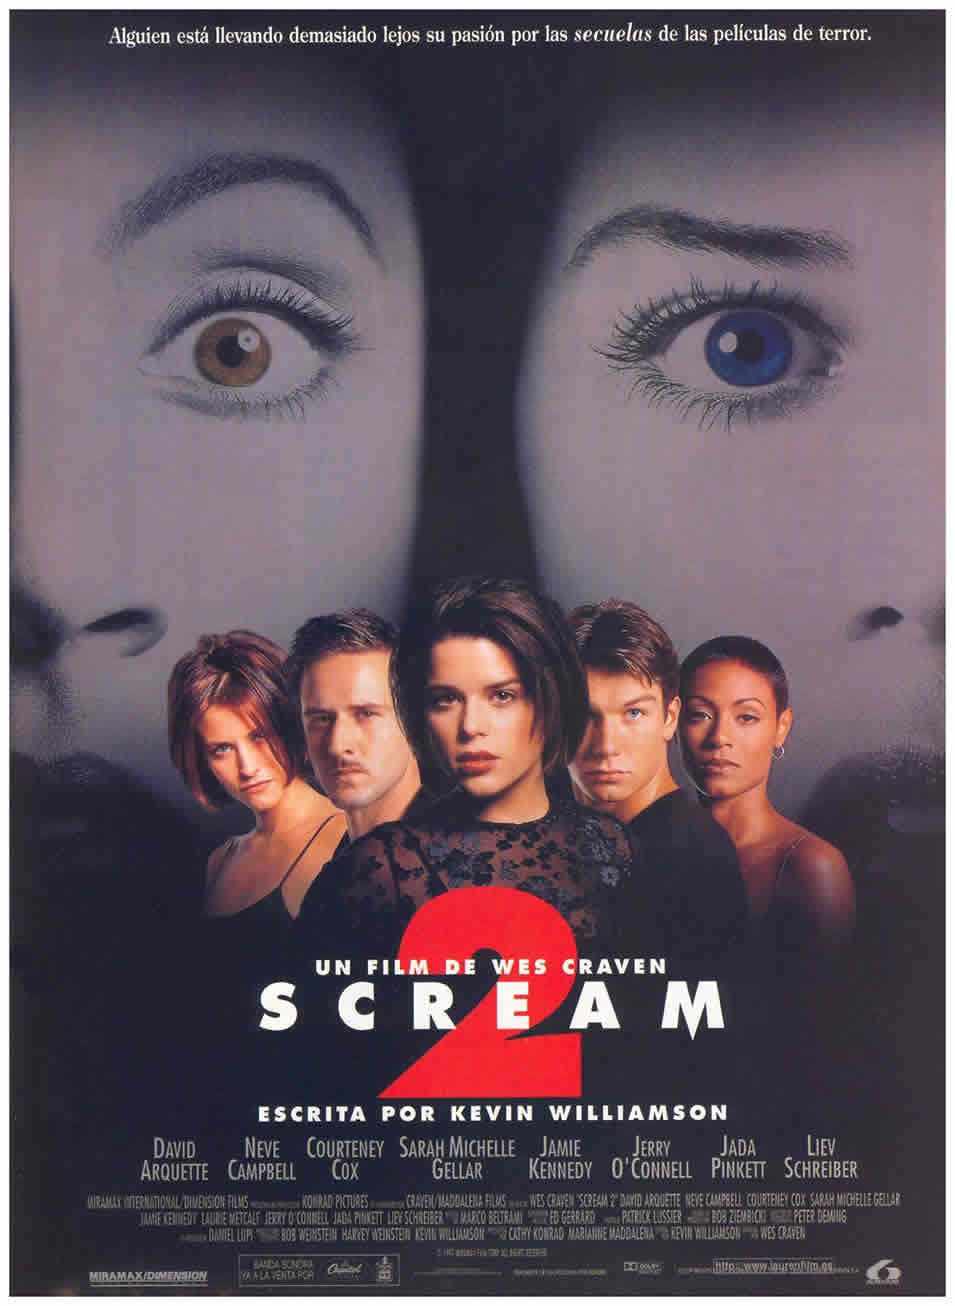 España poster for Scream-2